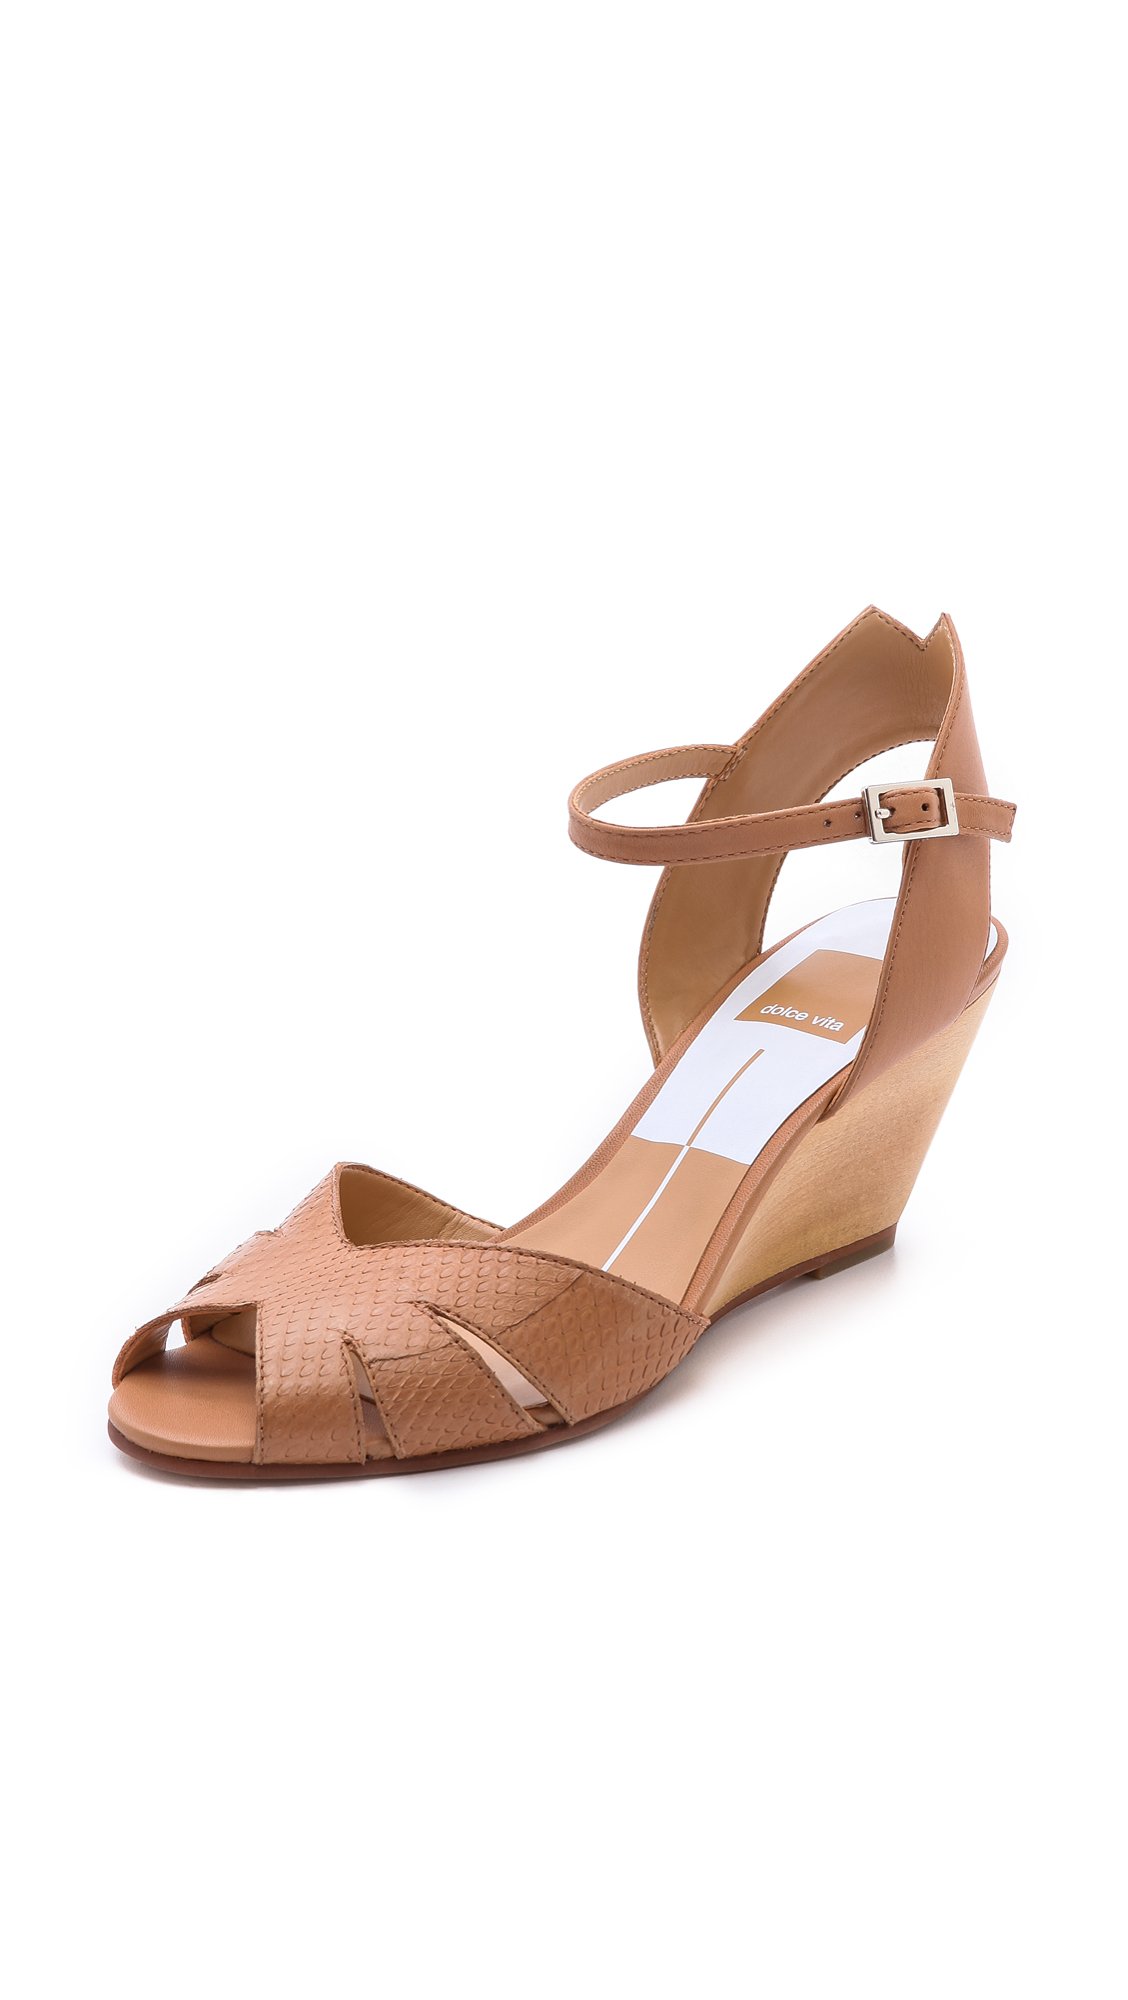 Lyst Dolce Vita Kimbra Wedge Sandals In Brown